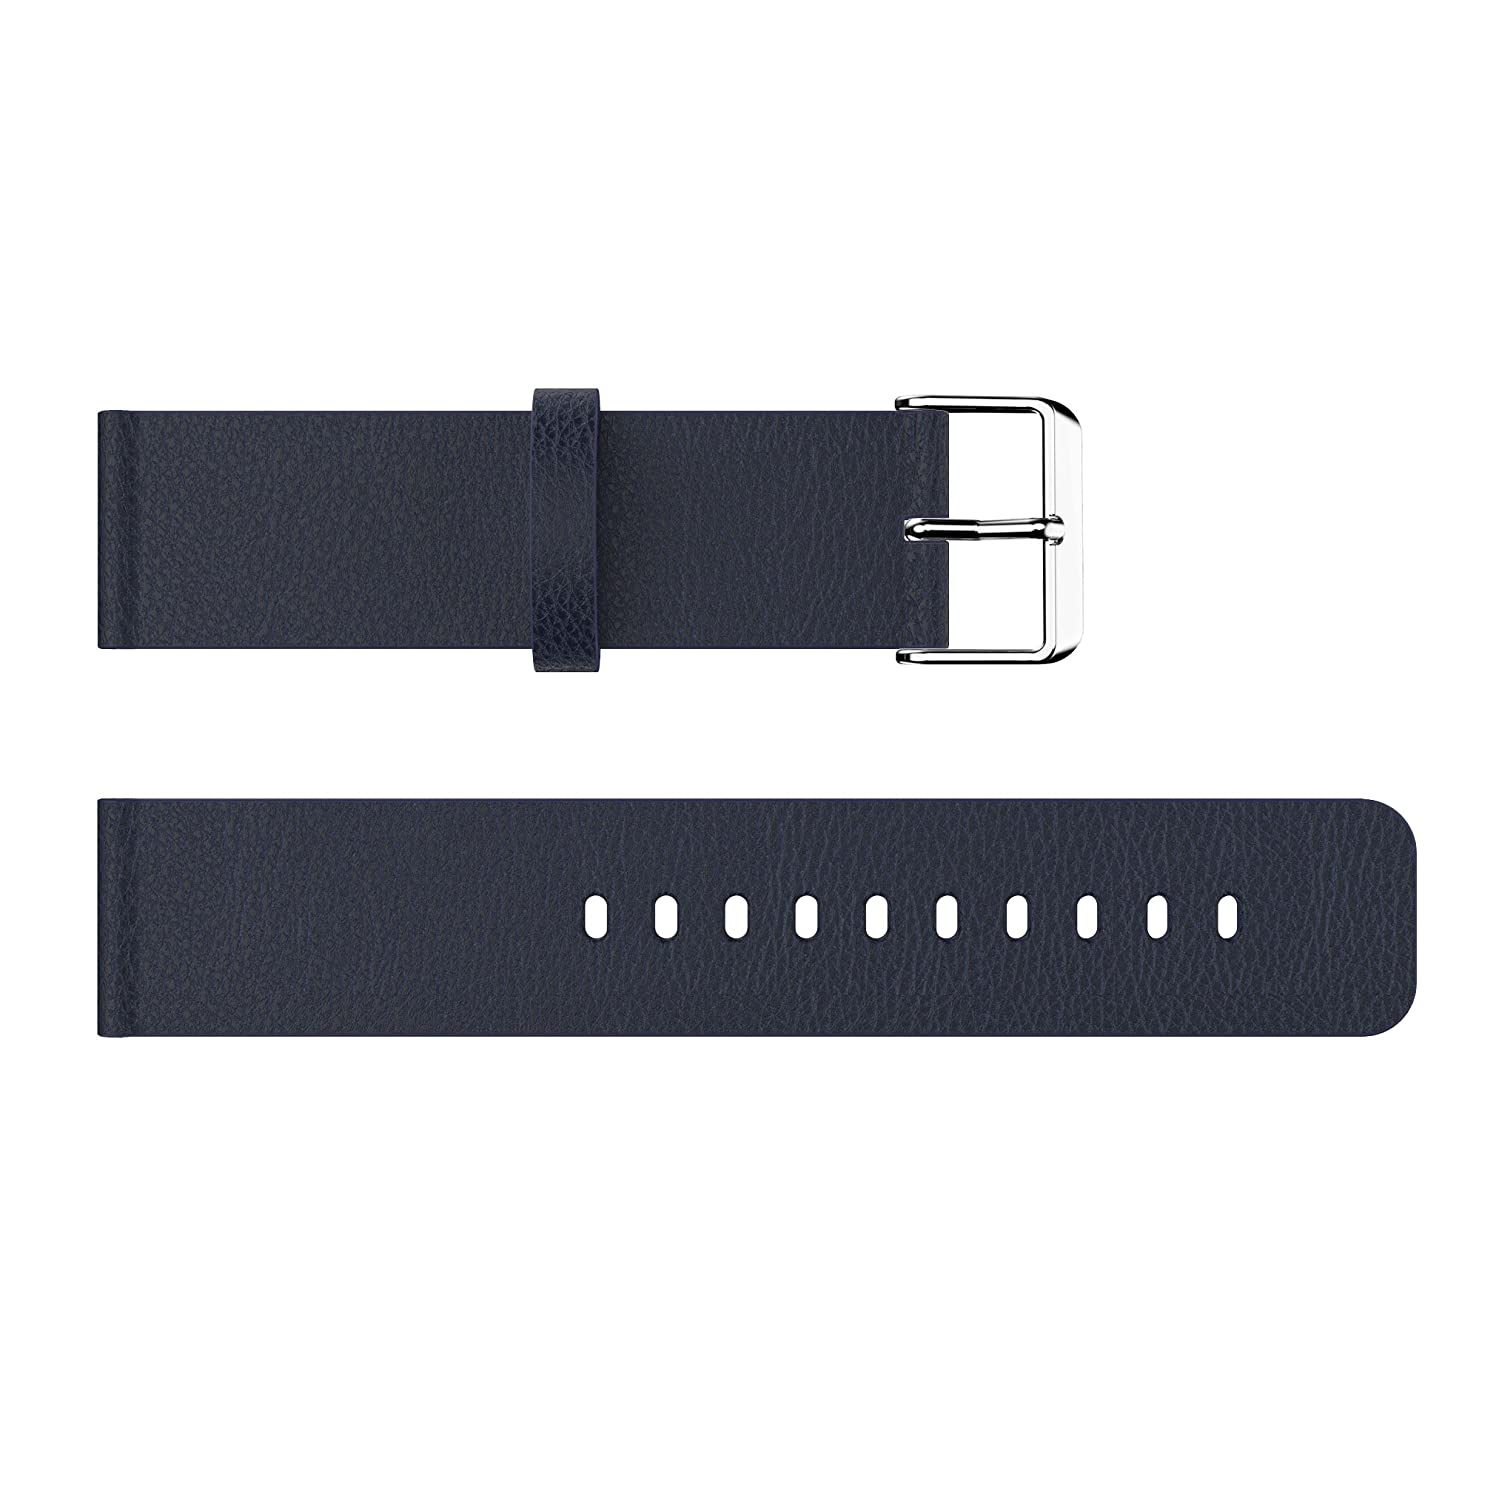 Leather Accessory Genuine Leather Wristband Strap Replacement for Fitbit Versa Smartwatch Junboer Compatible Fitbit Versa Bands Women